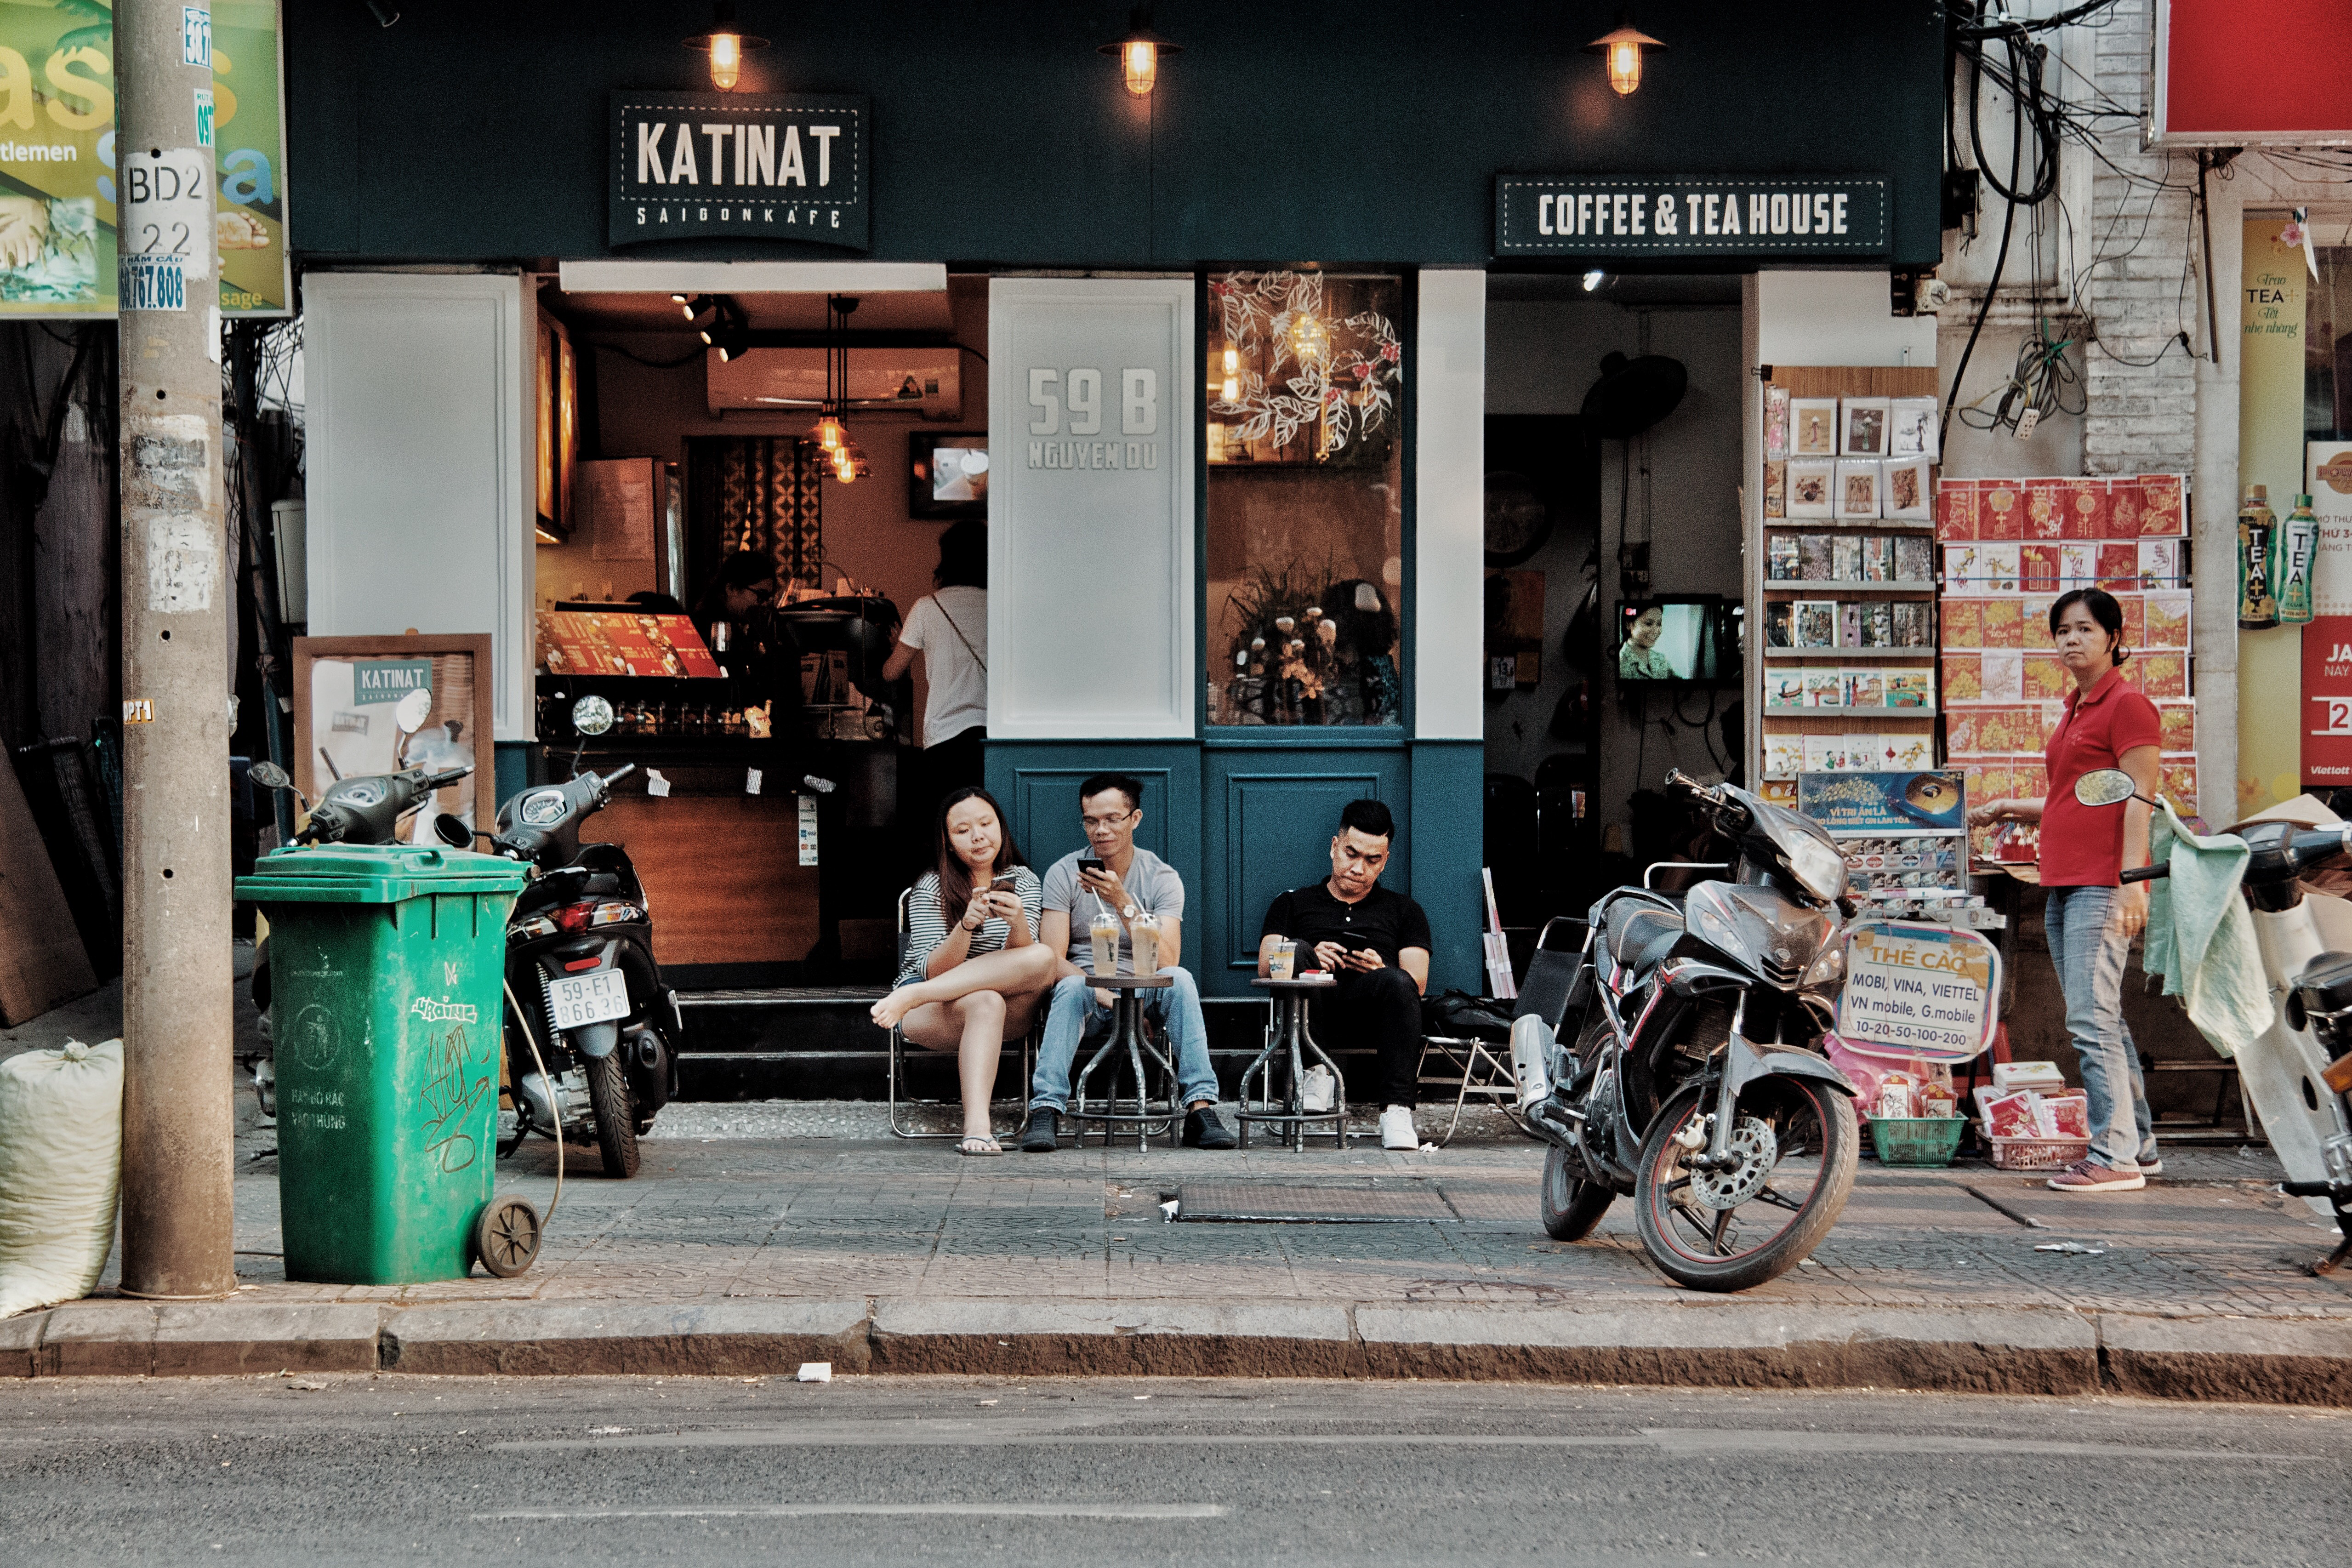 Three people sitting on chairs outside coffee & tea house near motorcycles photo